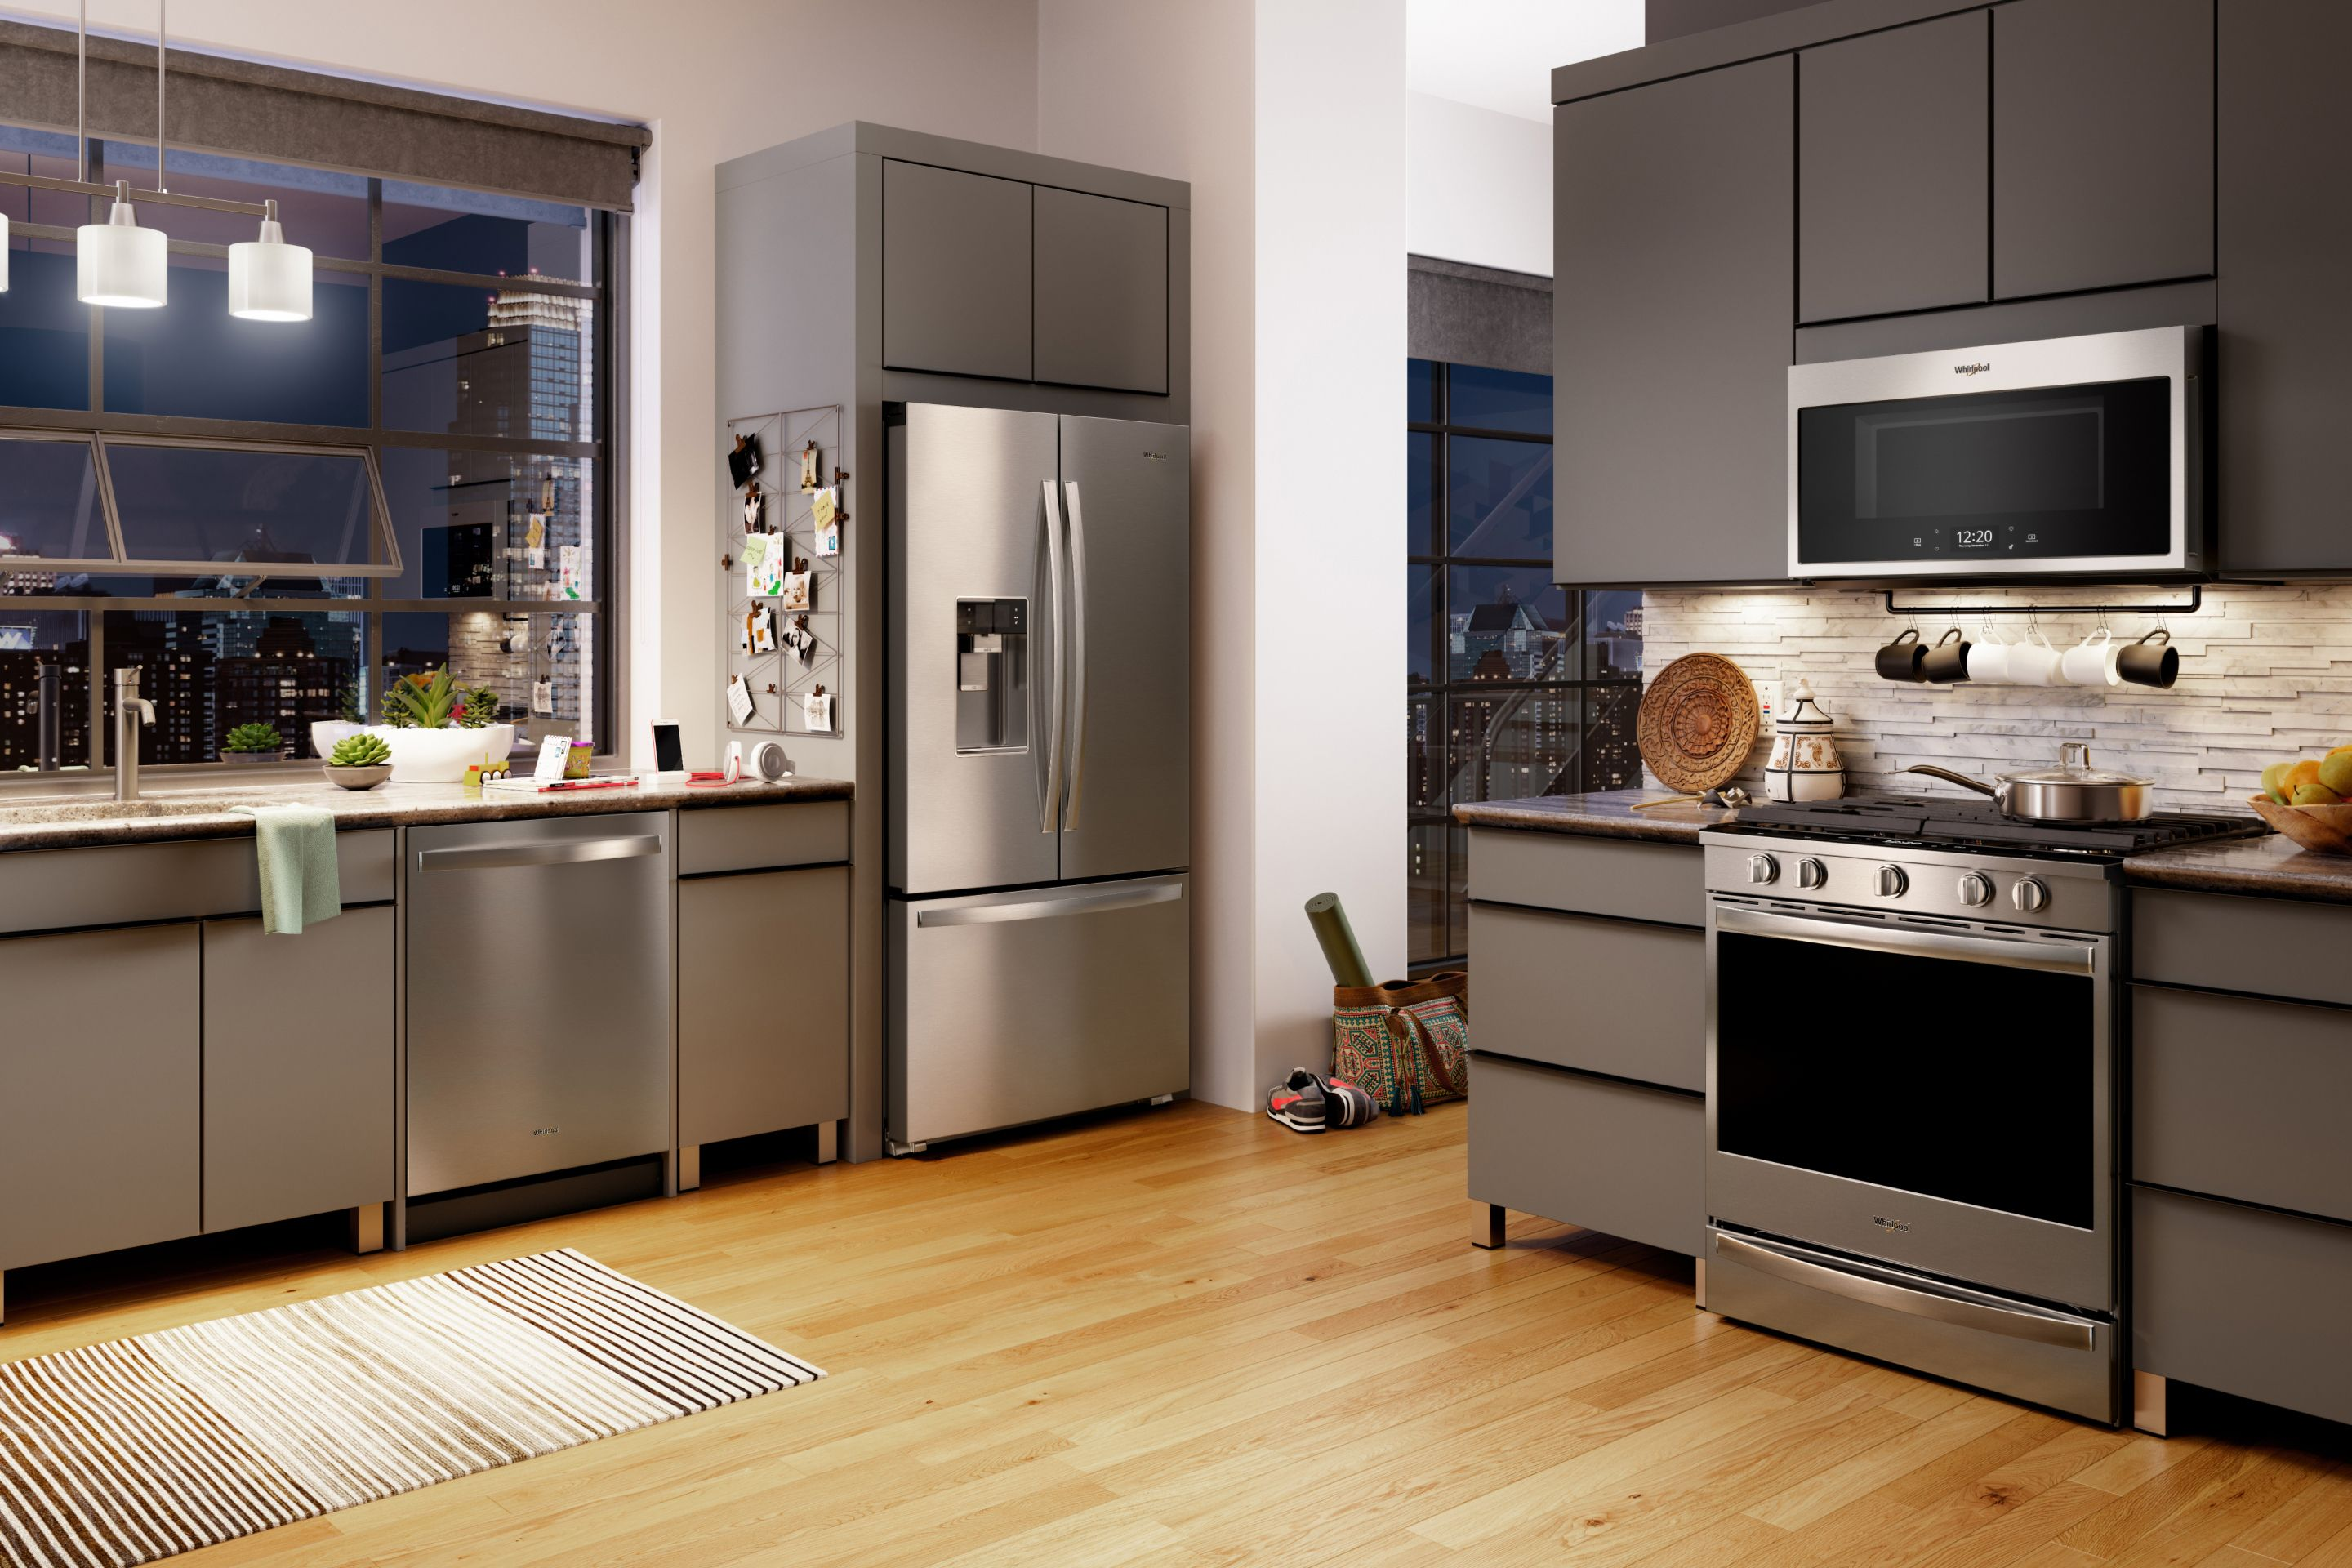 Fingerprint-resistant stainless steel appliance finishes keep your kitchen easy to clean.